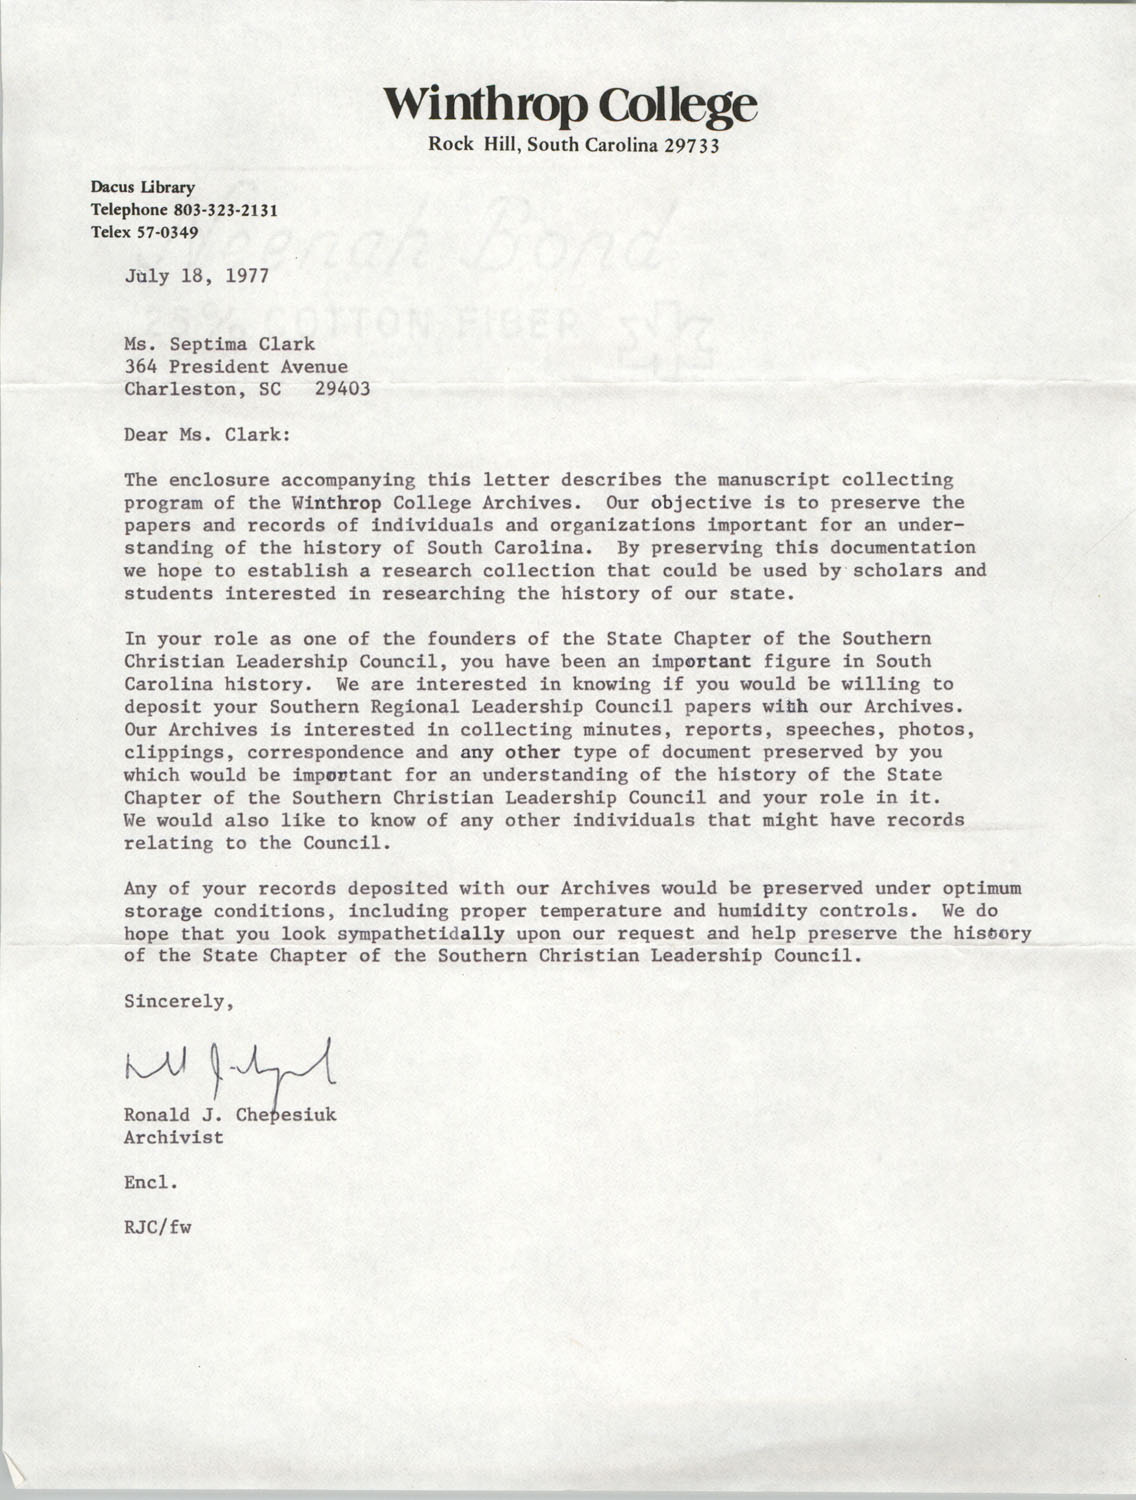 Letter from Ronald J. Chepesiuk to Septima P. Clark, July 18, 1977